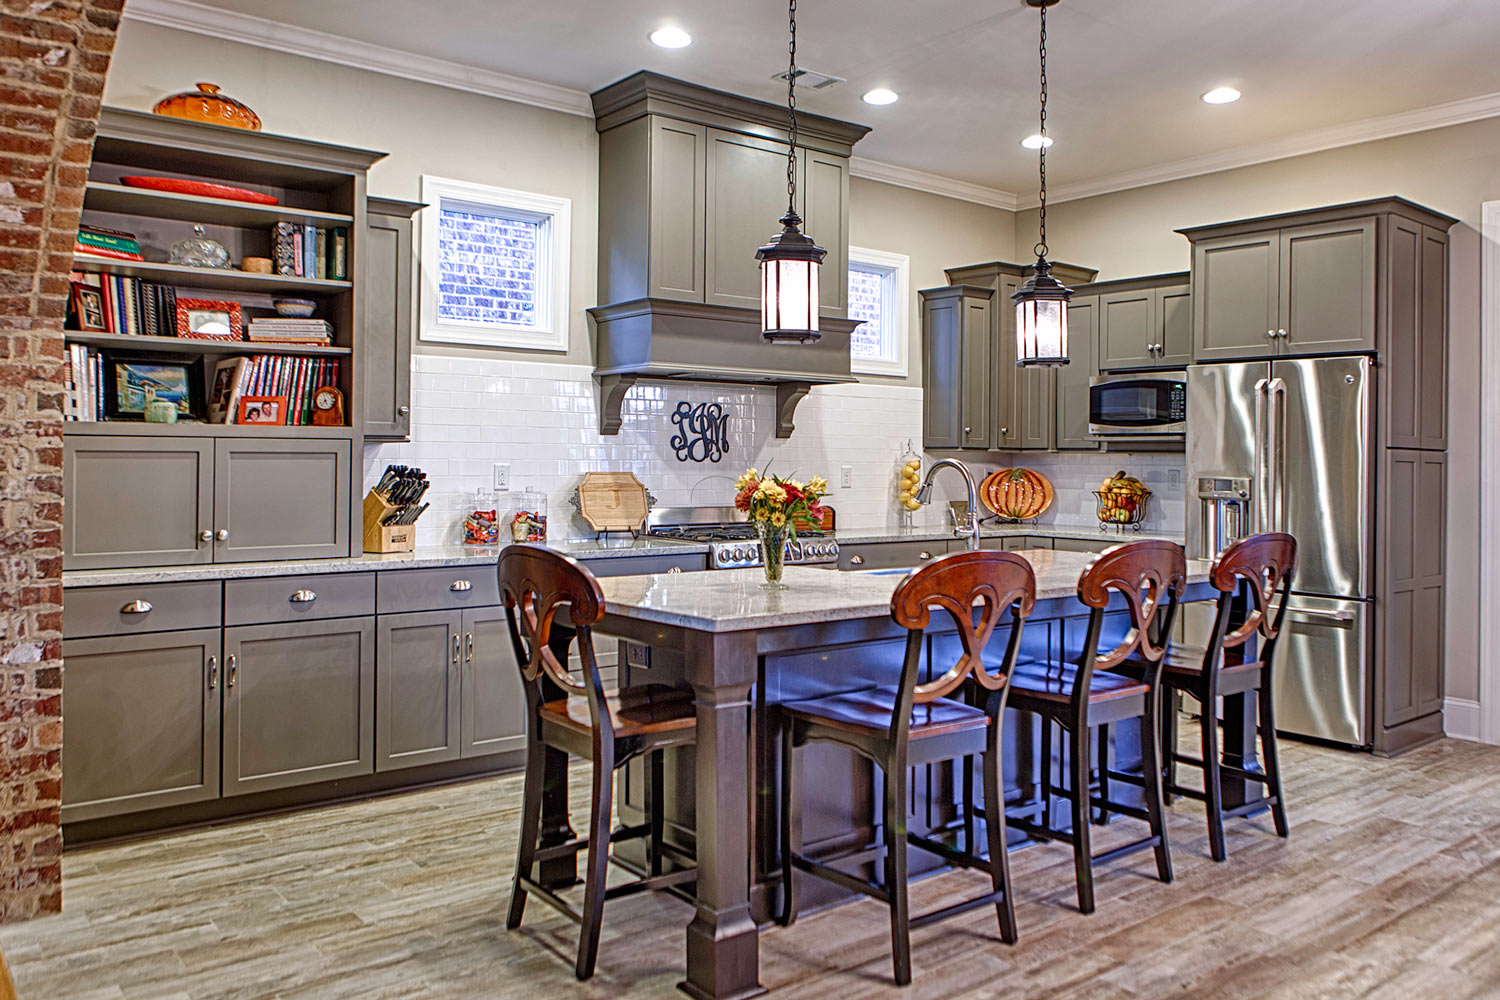 The kitchen island is a stained maple with an old world finish.